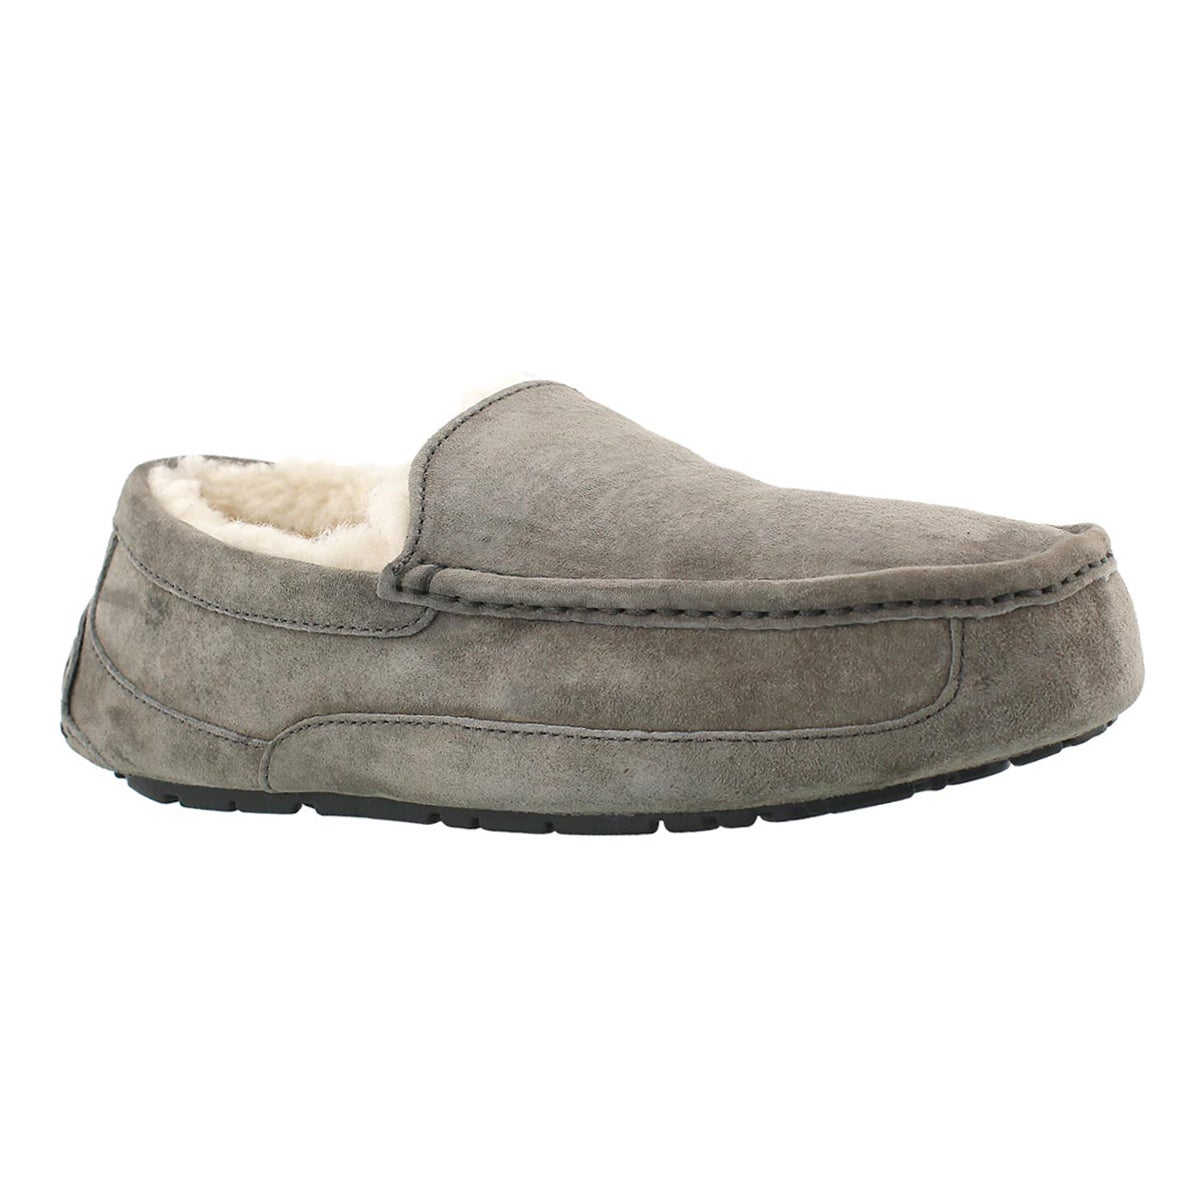 Mns Ascot charcoal sheepskin moccasin